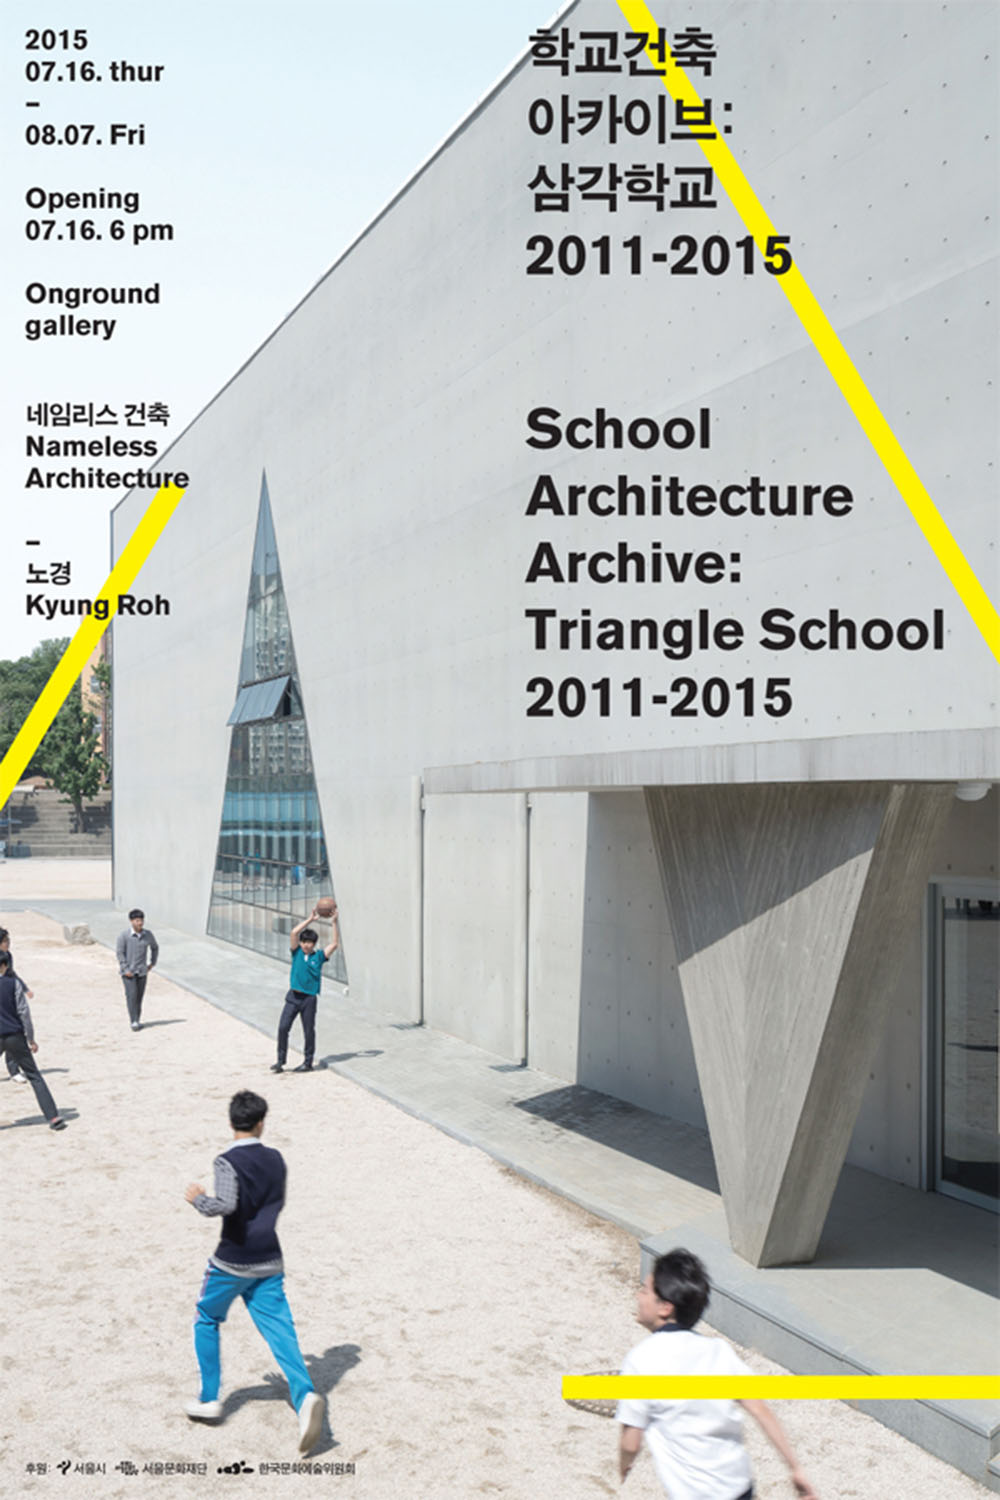 School Architecture Archive